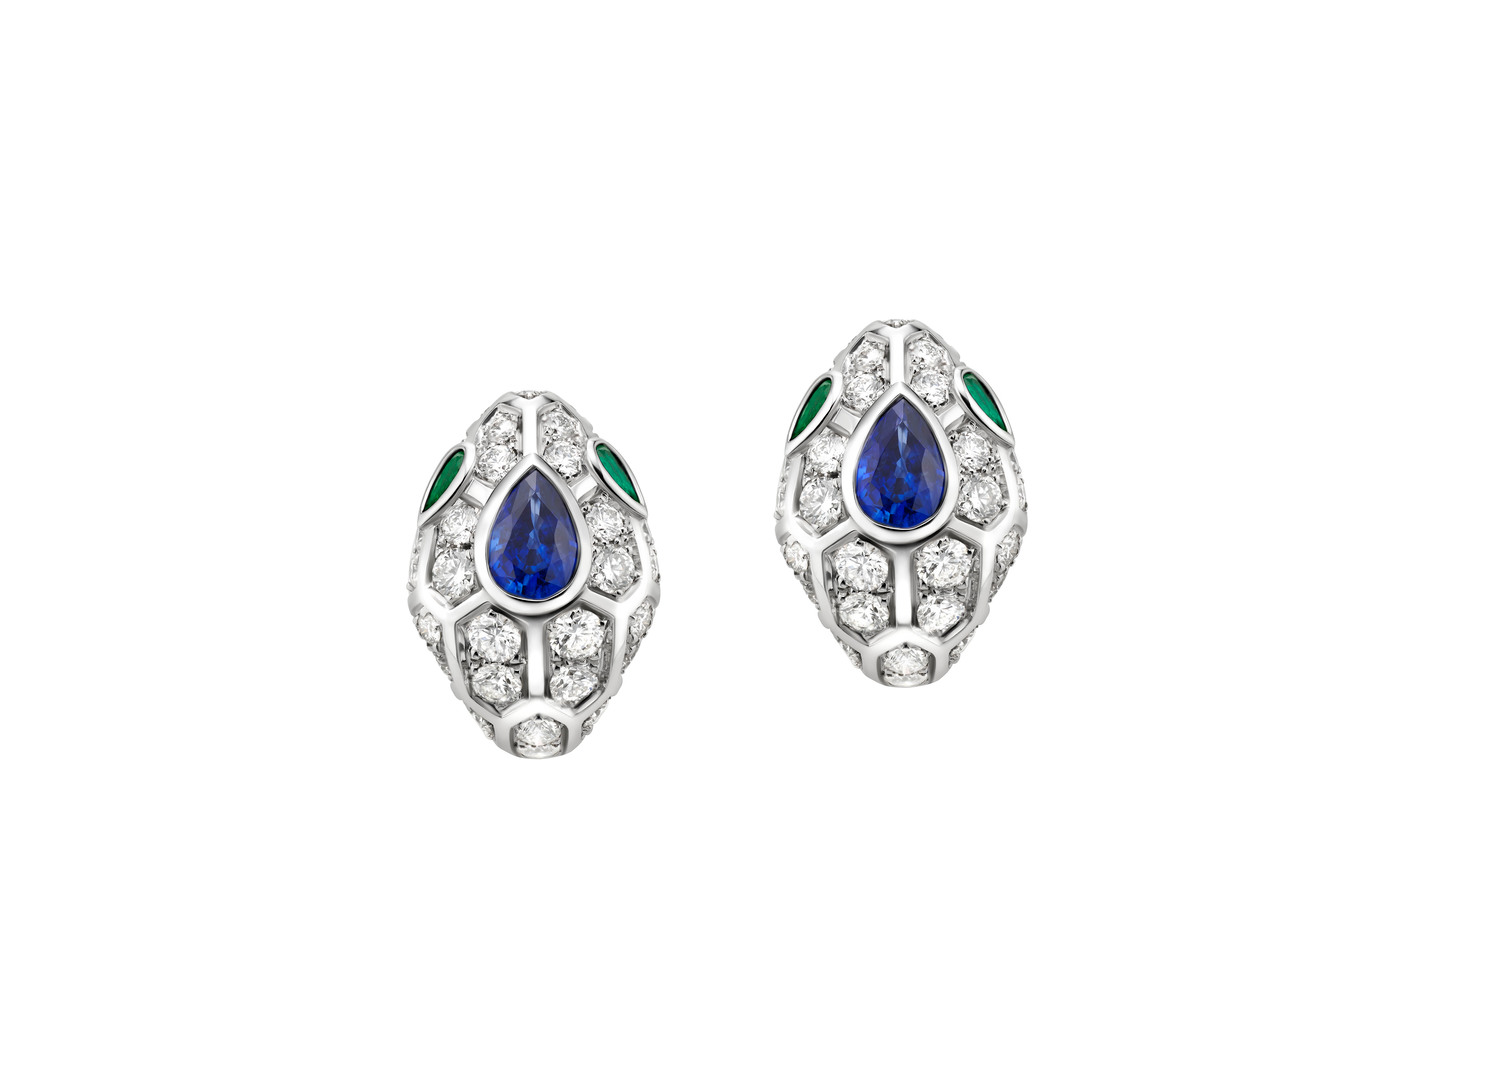 BVLGARI Serpenti 18 kt white gold earrings